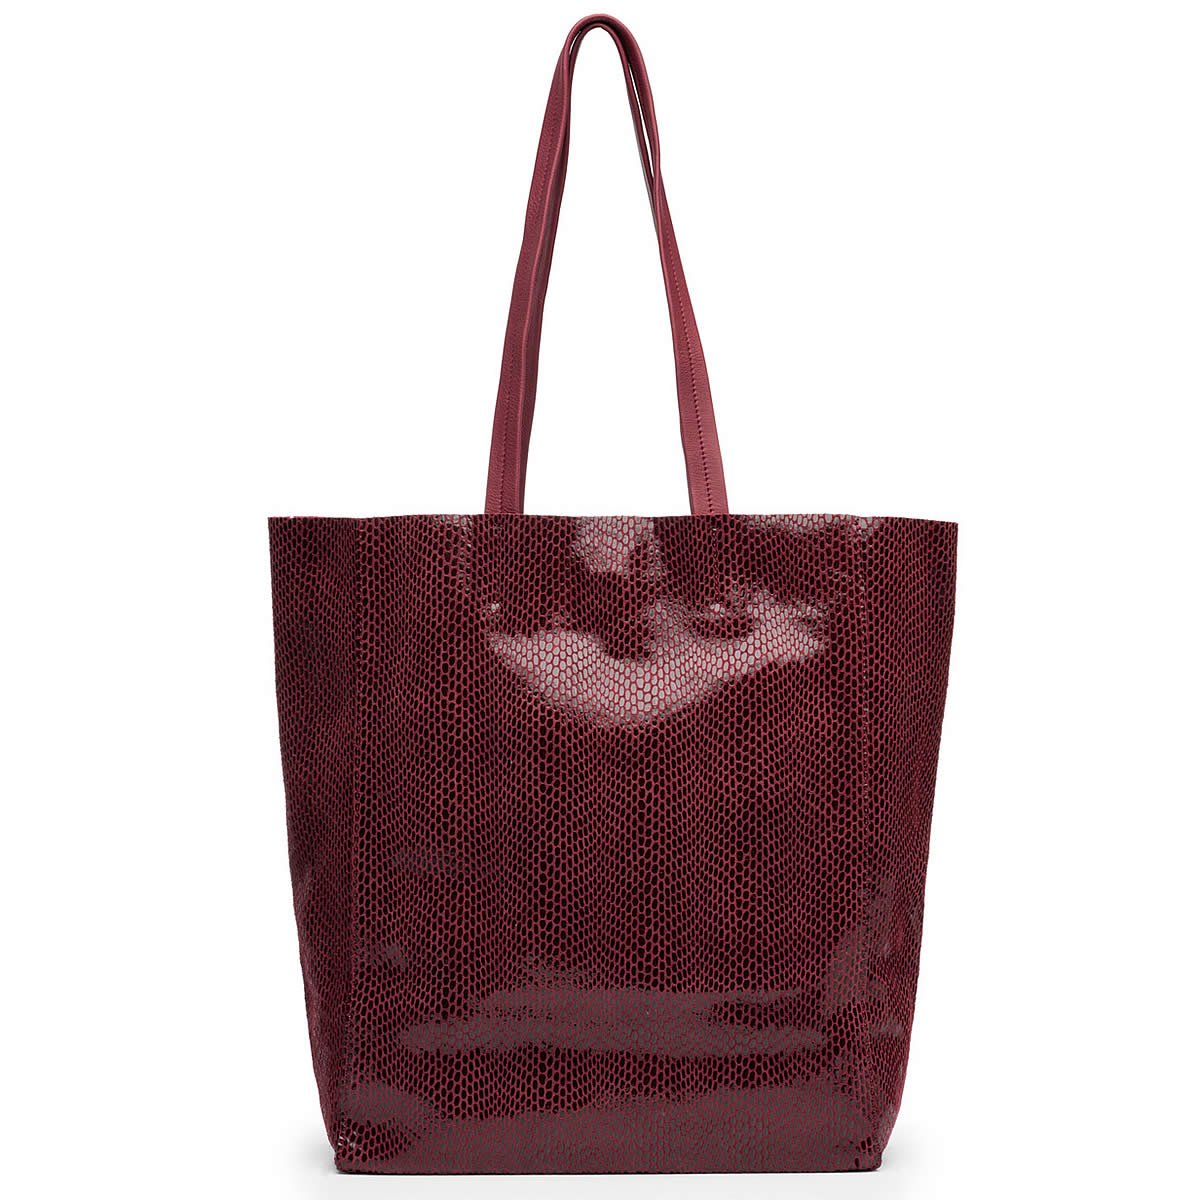 Sorial Rubina Tote, Oxblood,One size by Sorial (Image #1)